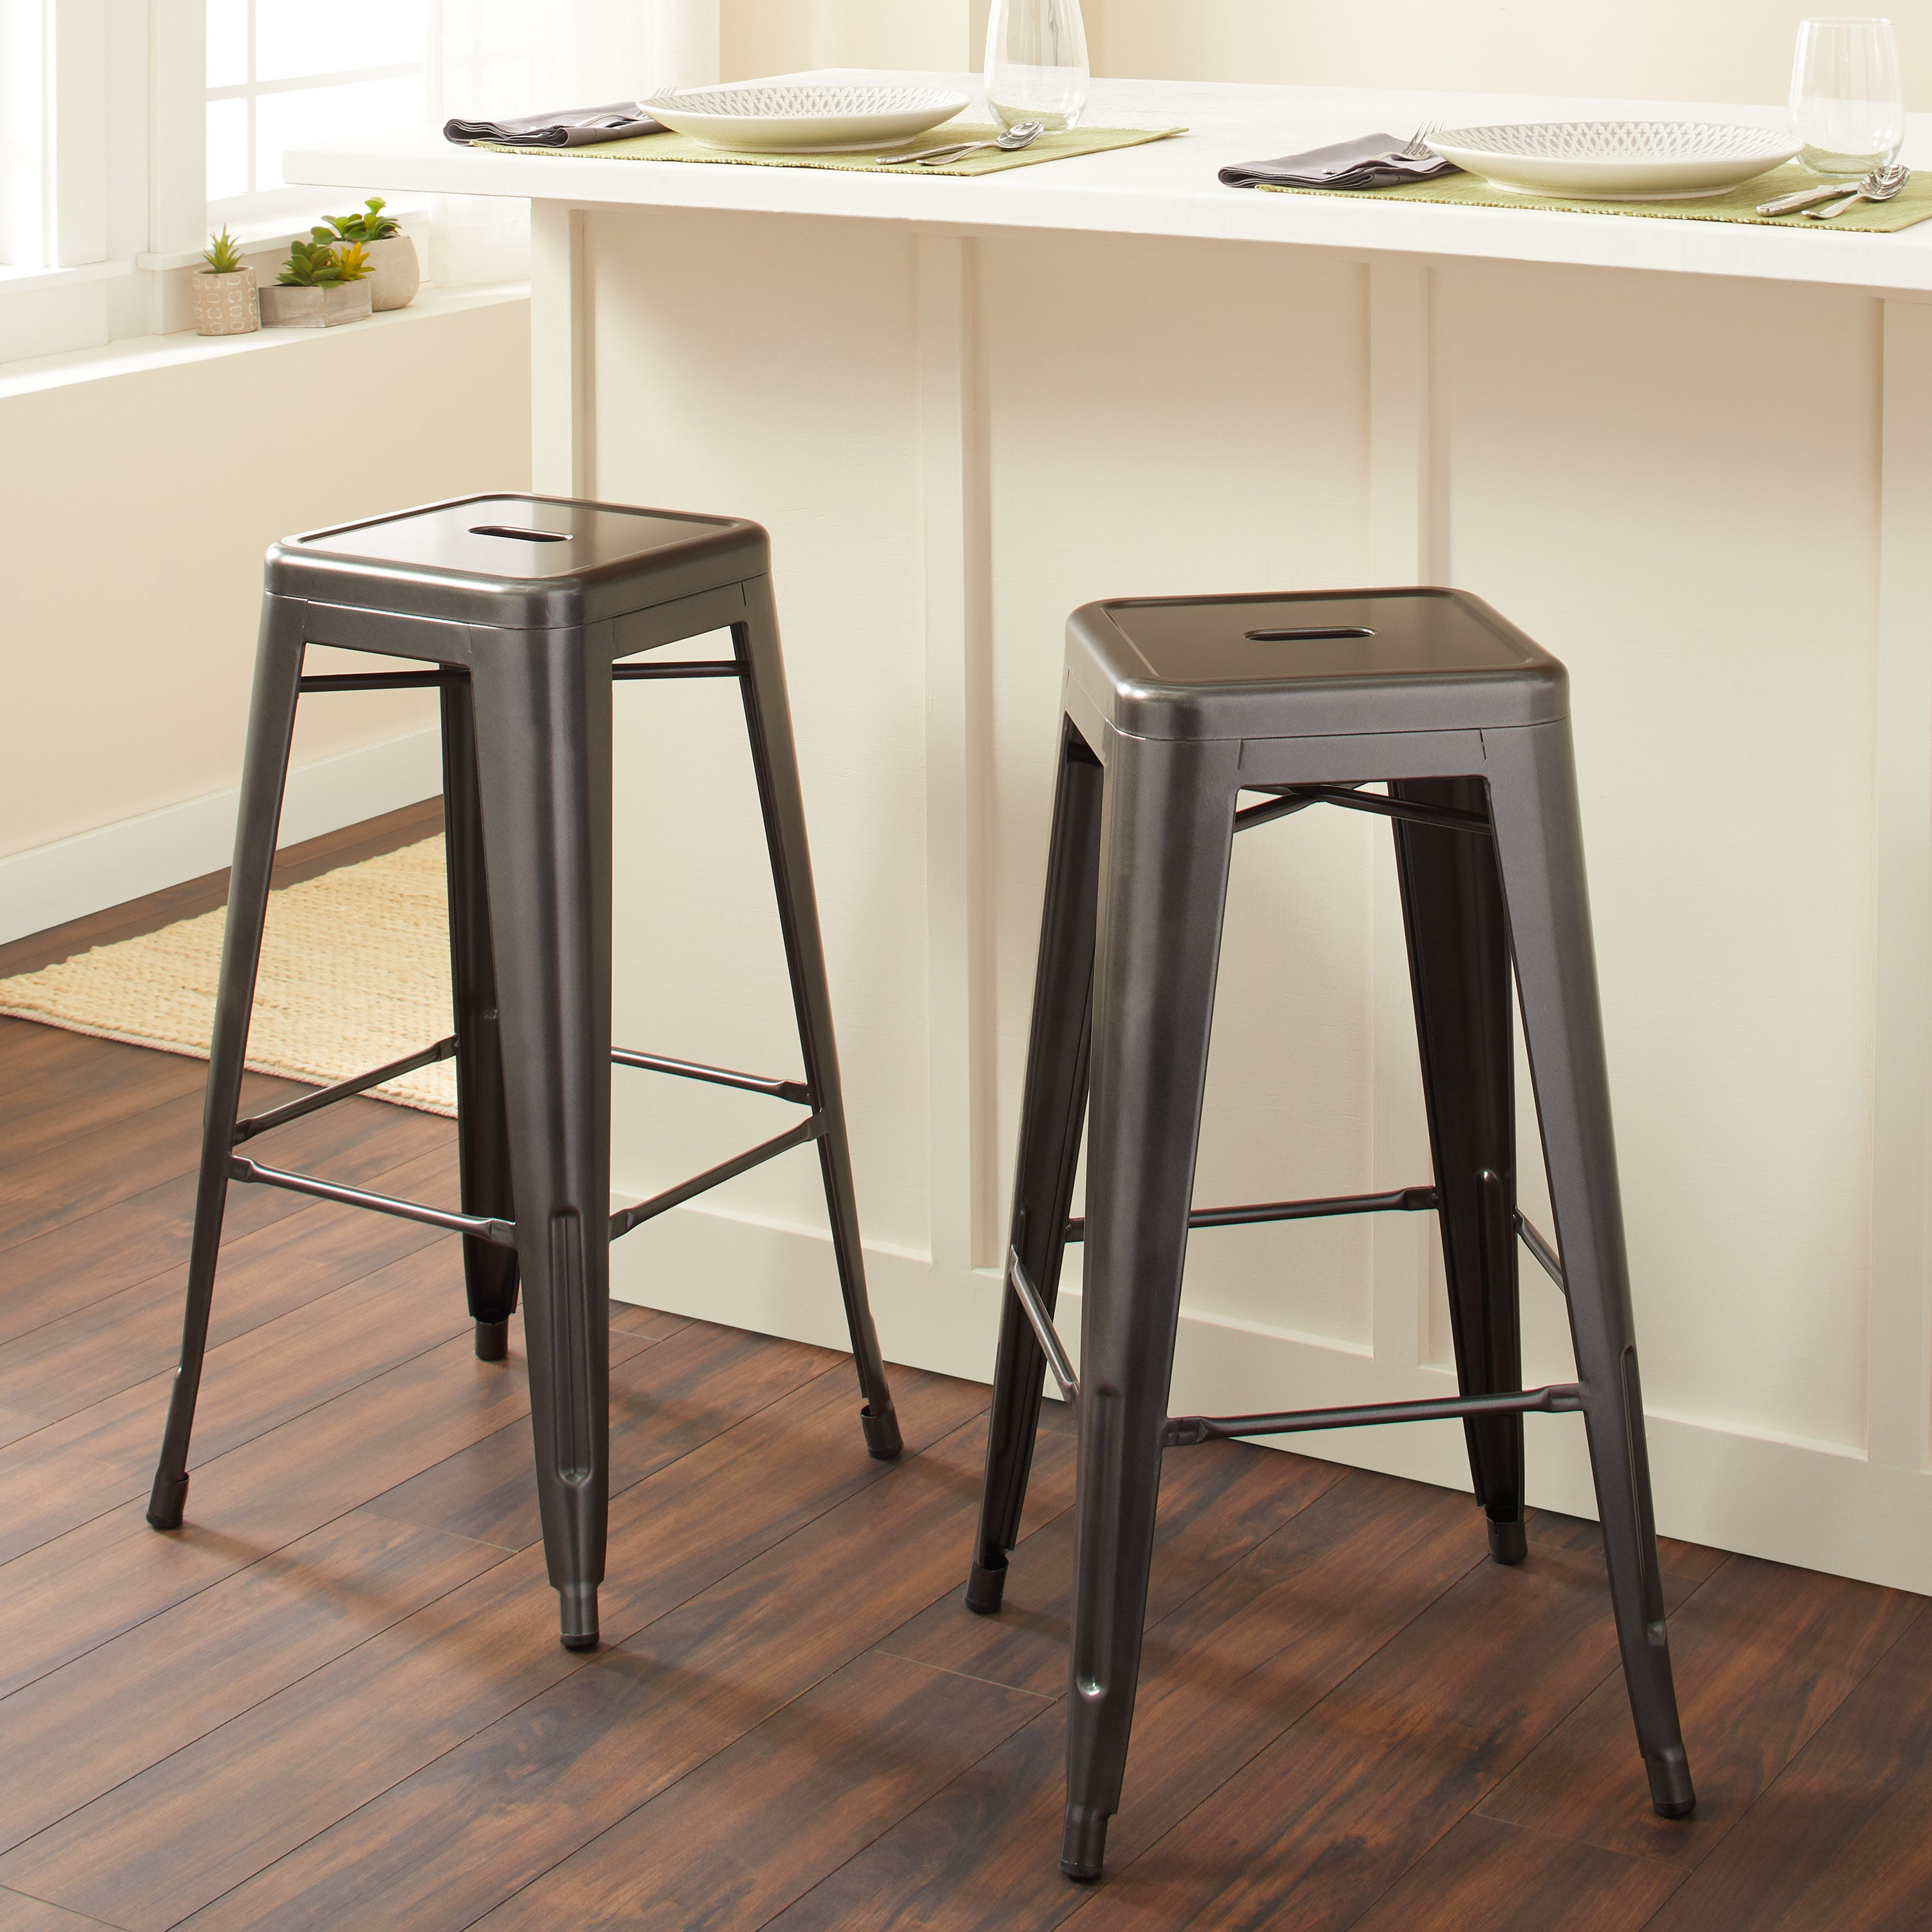 set bar counter padded tabouret carbon metal of stool product free overstock garden loft today home inch shipping